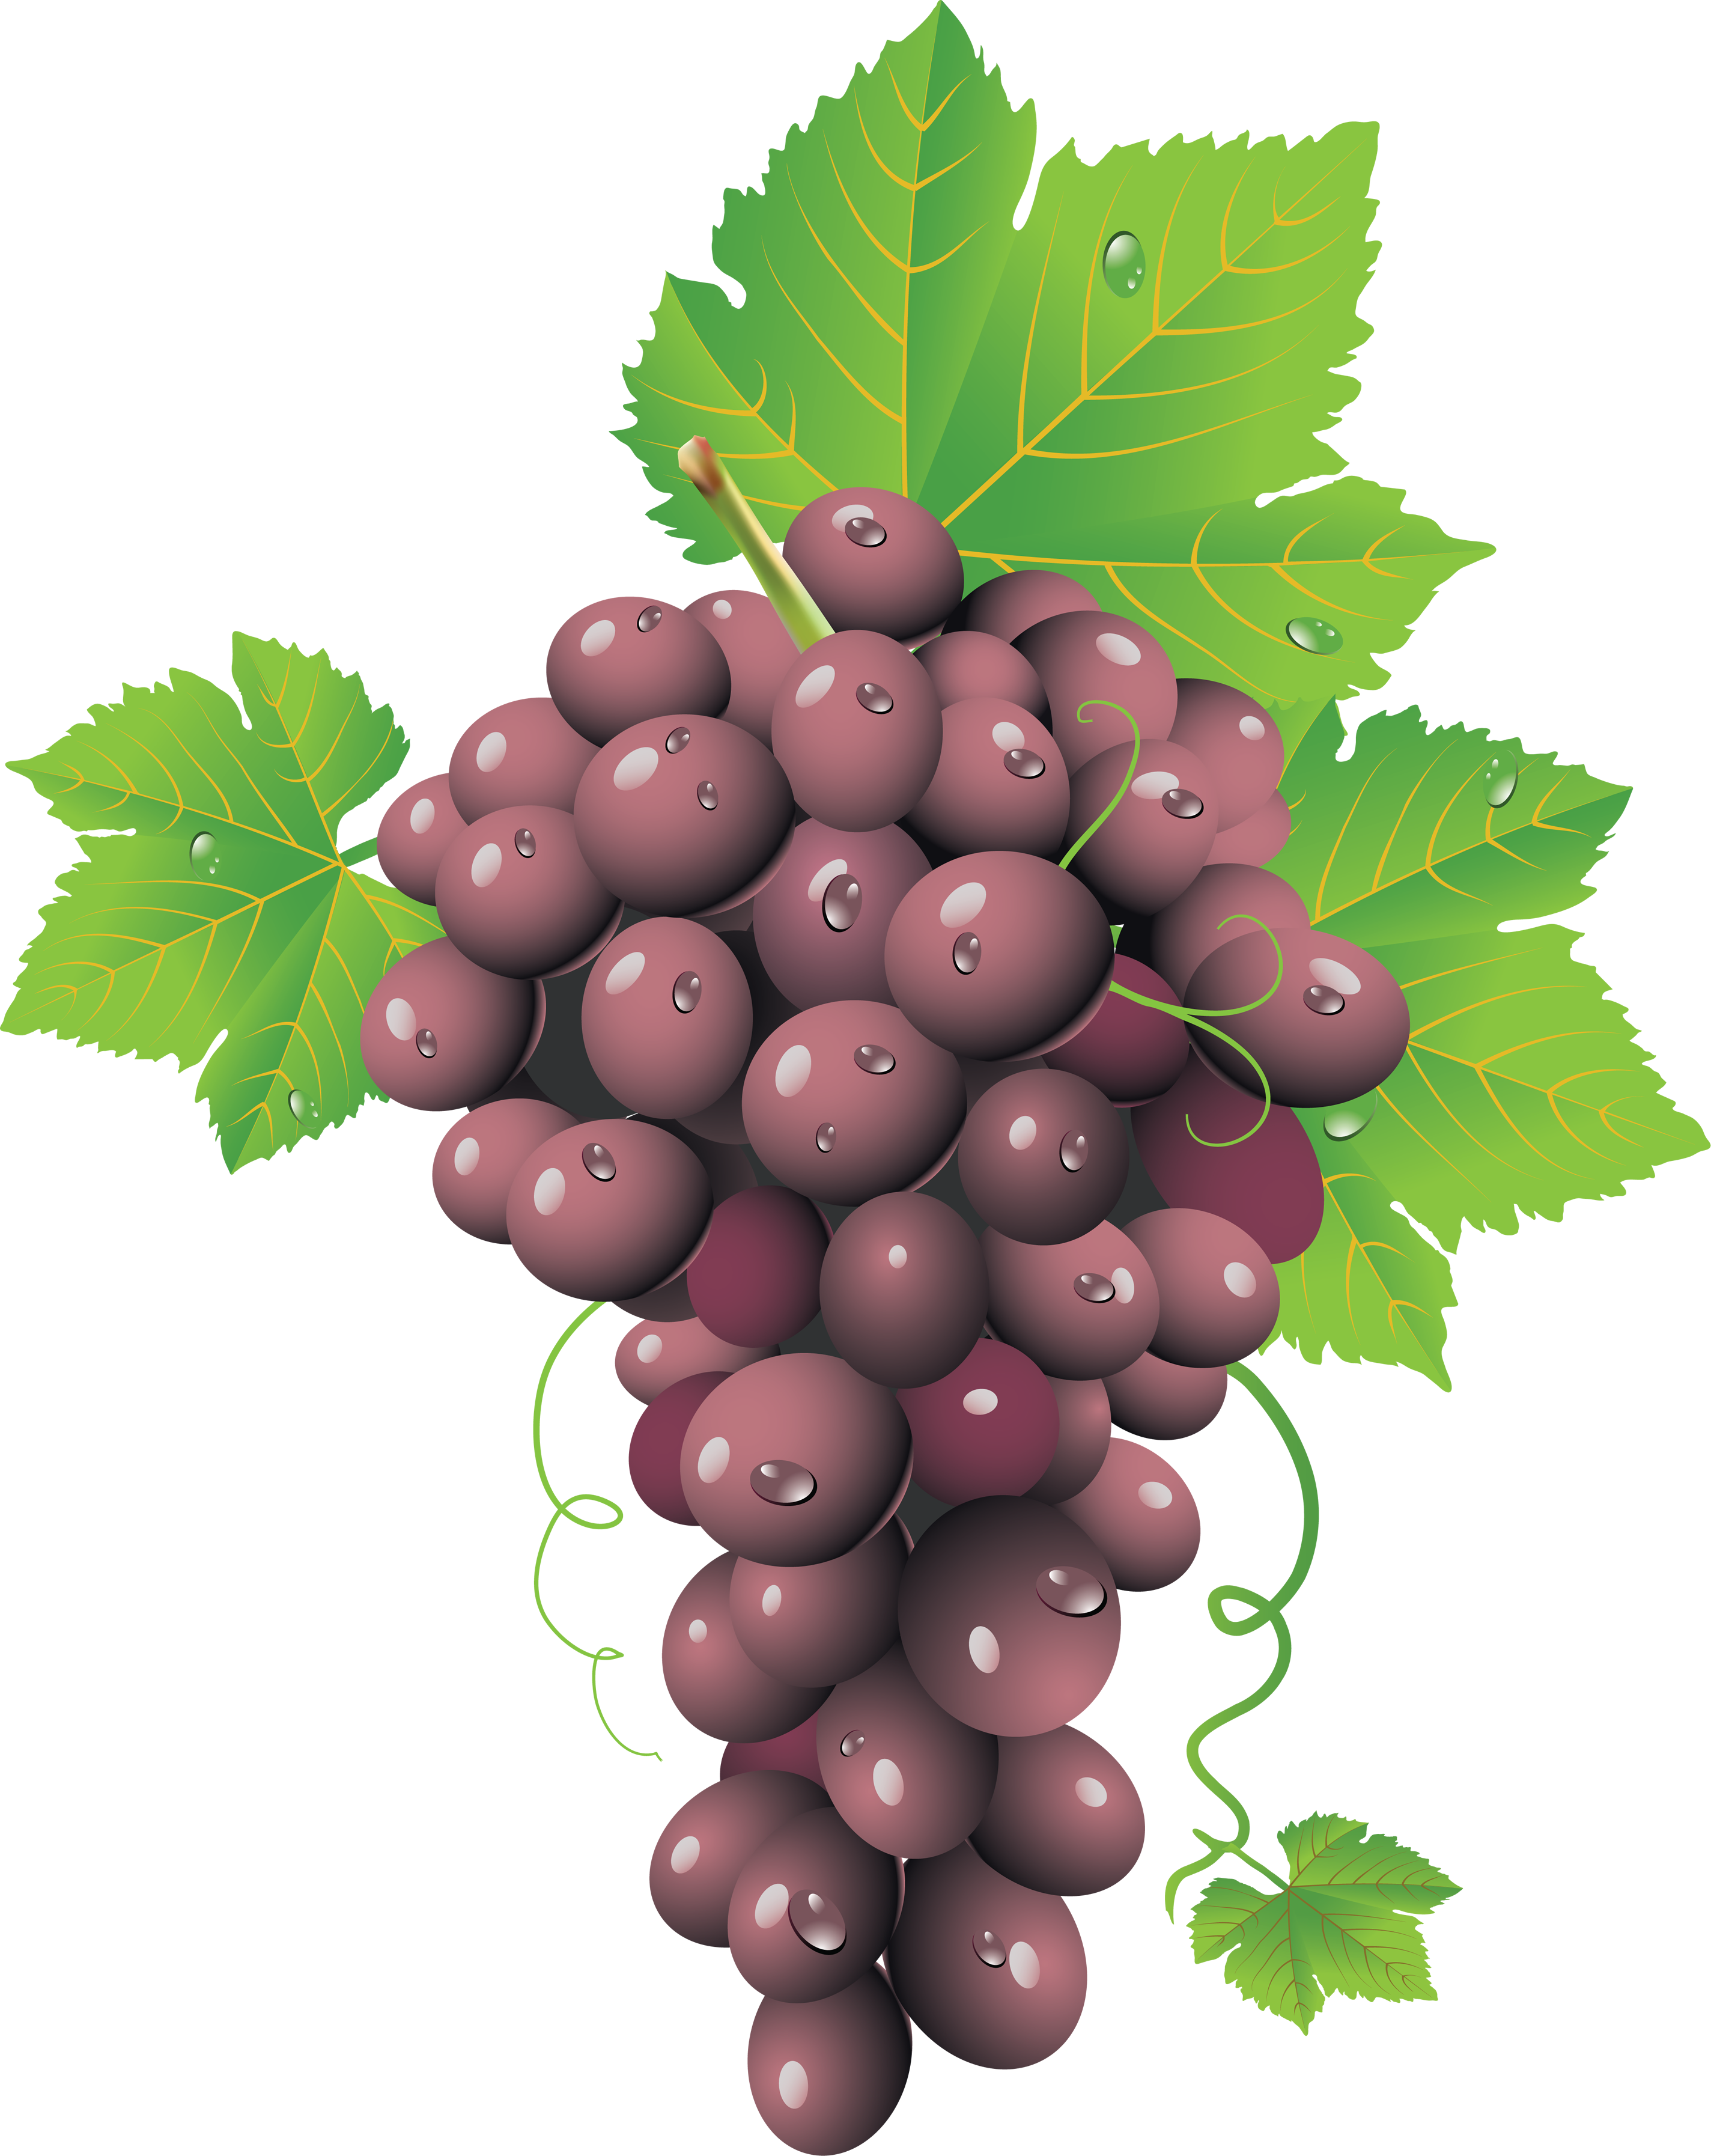 Grape PNG image, free picture download.